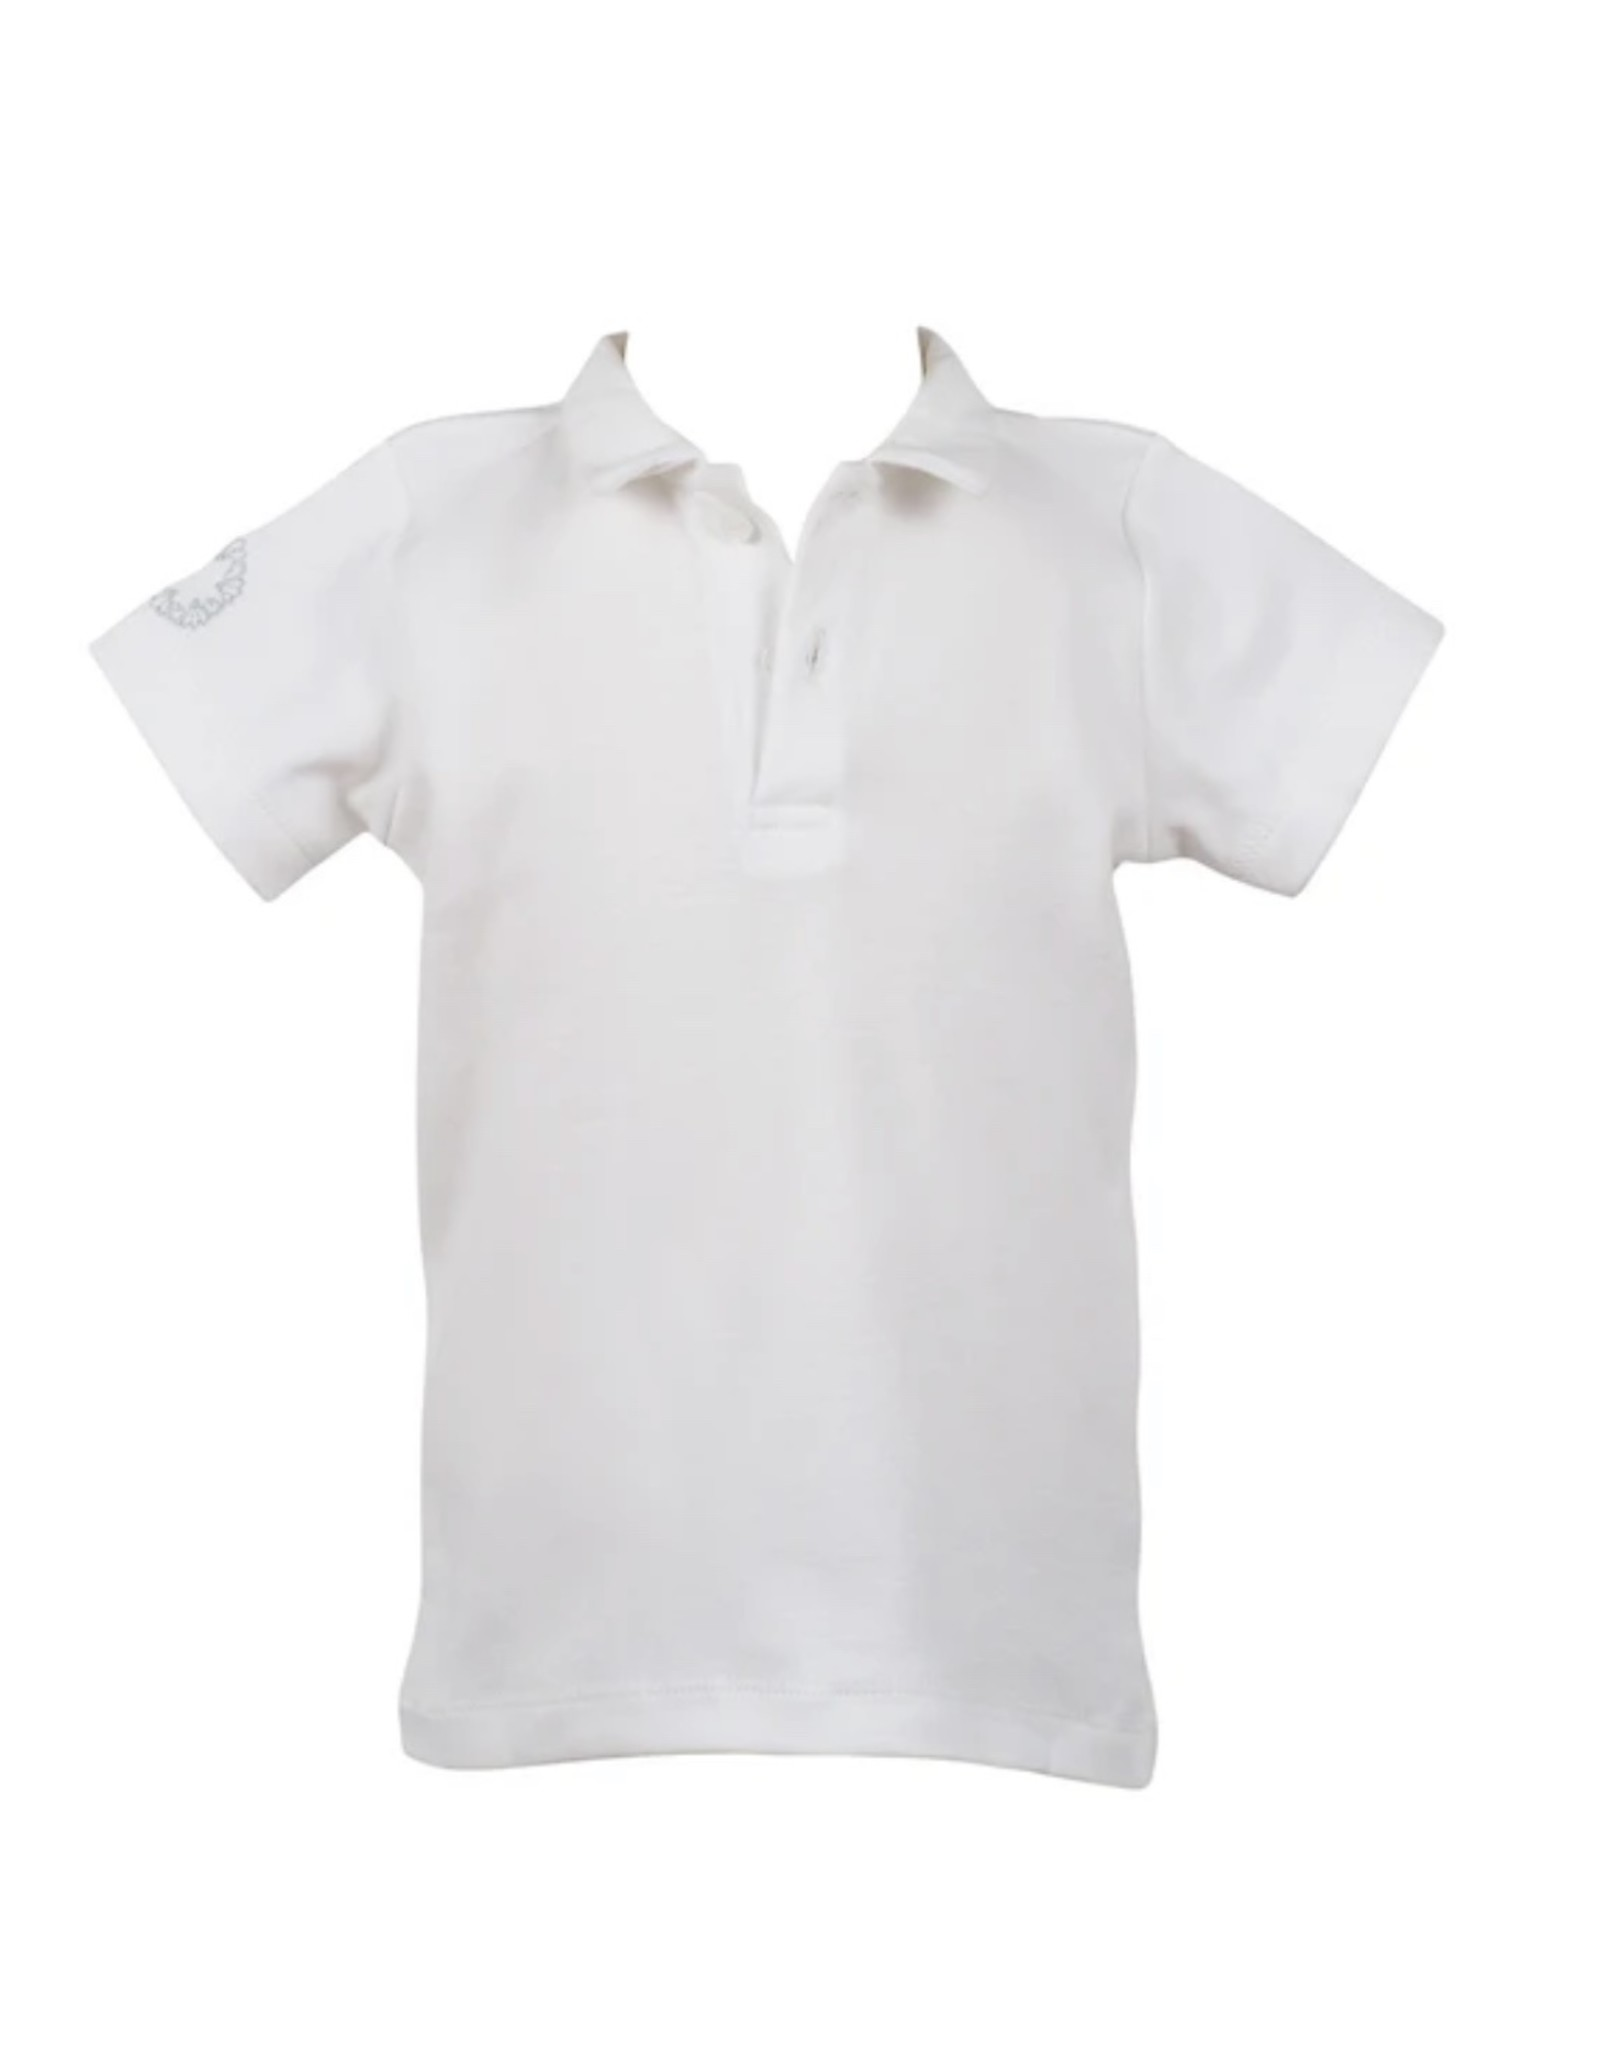 The Proper Peony White Proper Polo Shirt